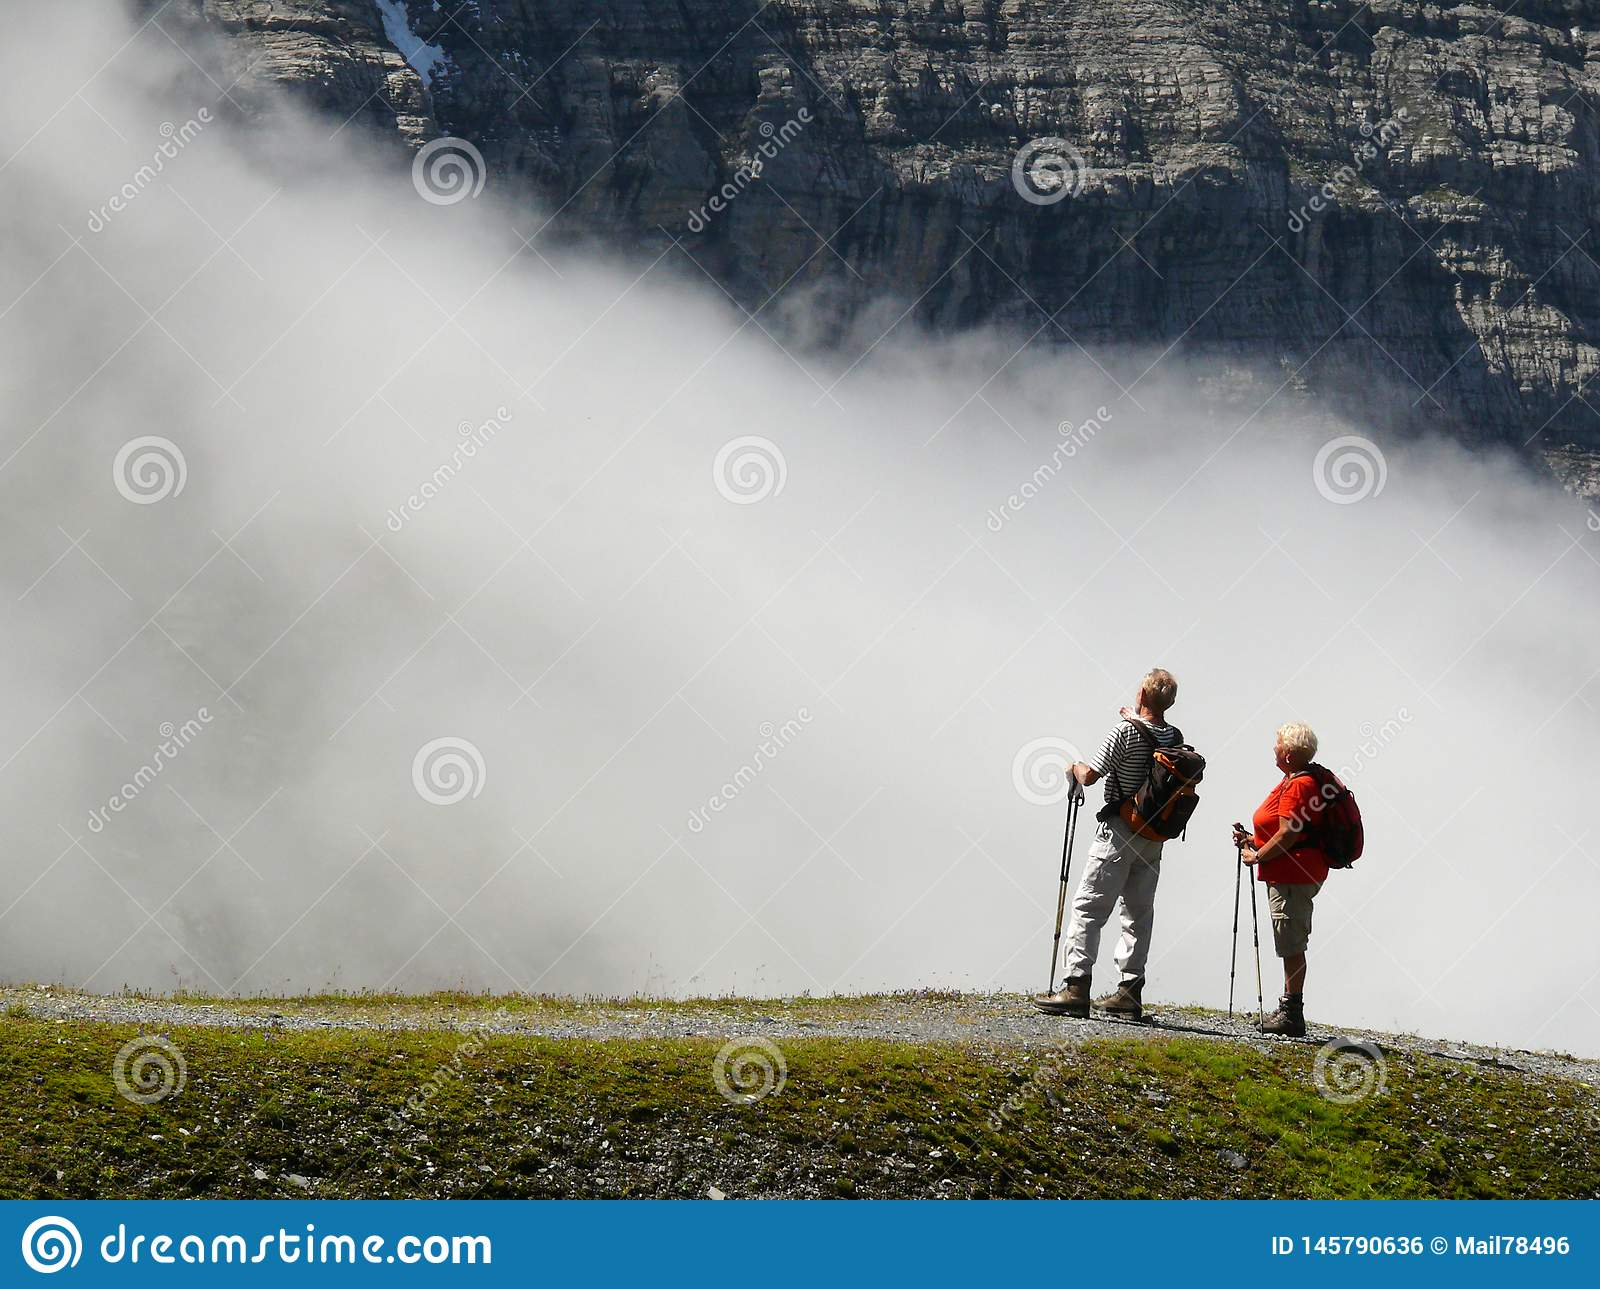 Wengen, Switzerland. 08/17/2010. Two hikers in the high mountains admire the landscape